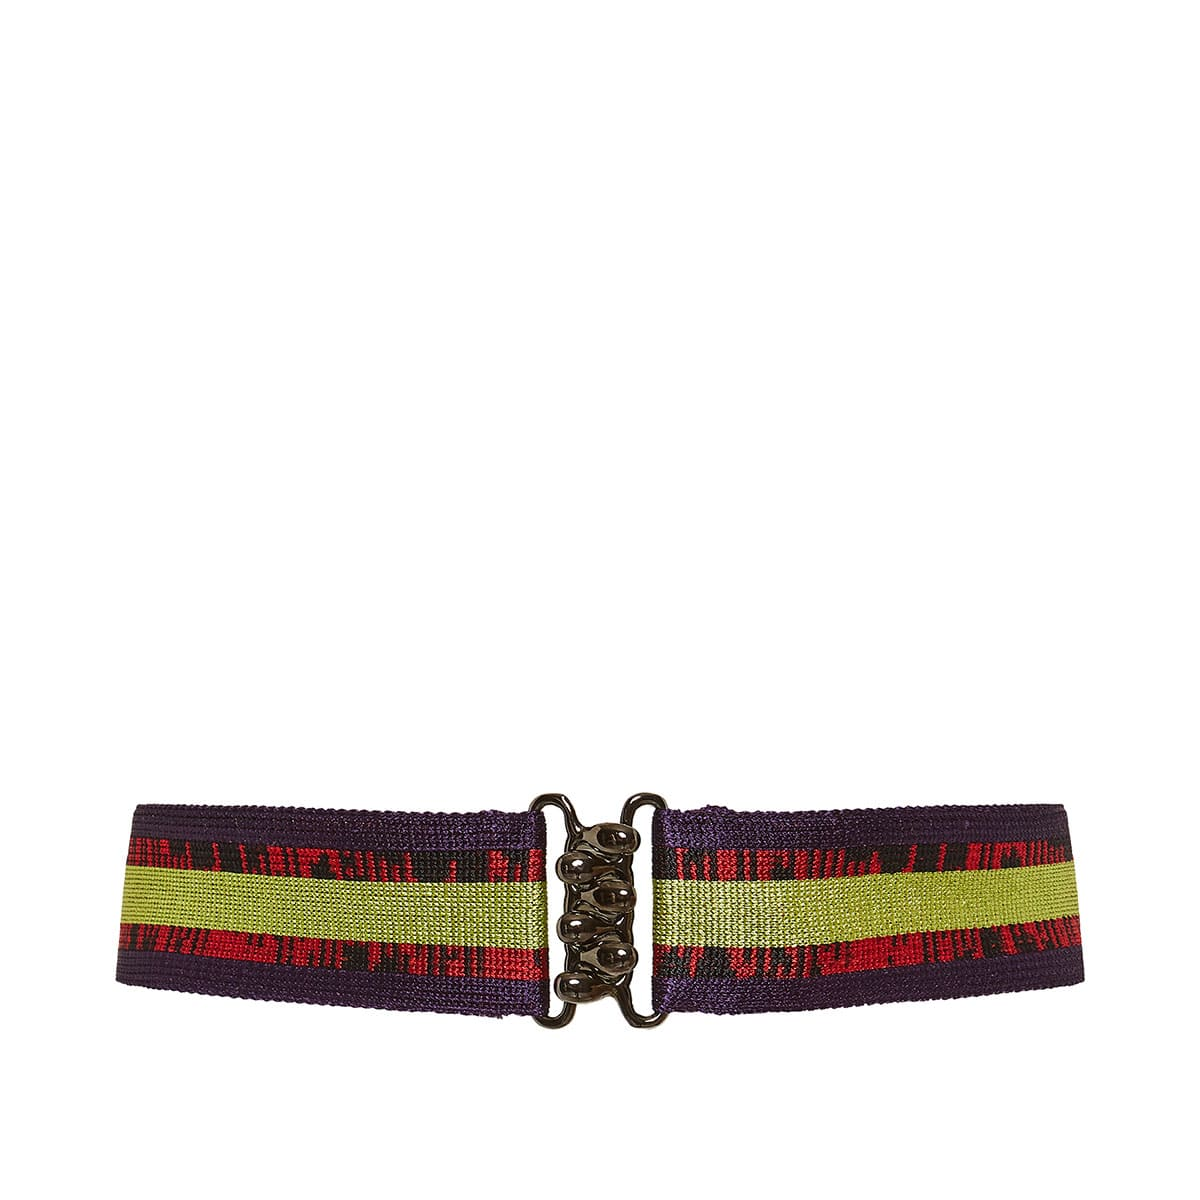 Striped knitted belt